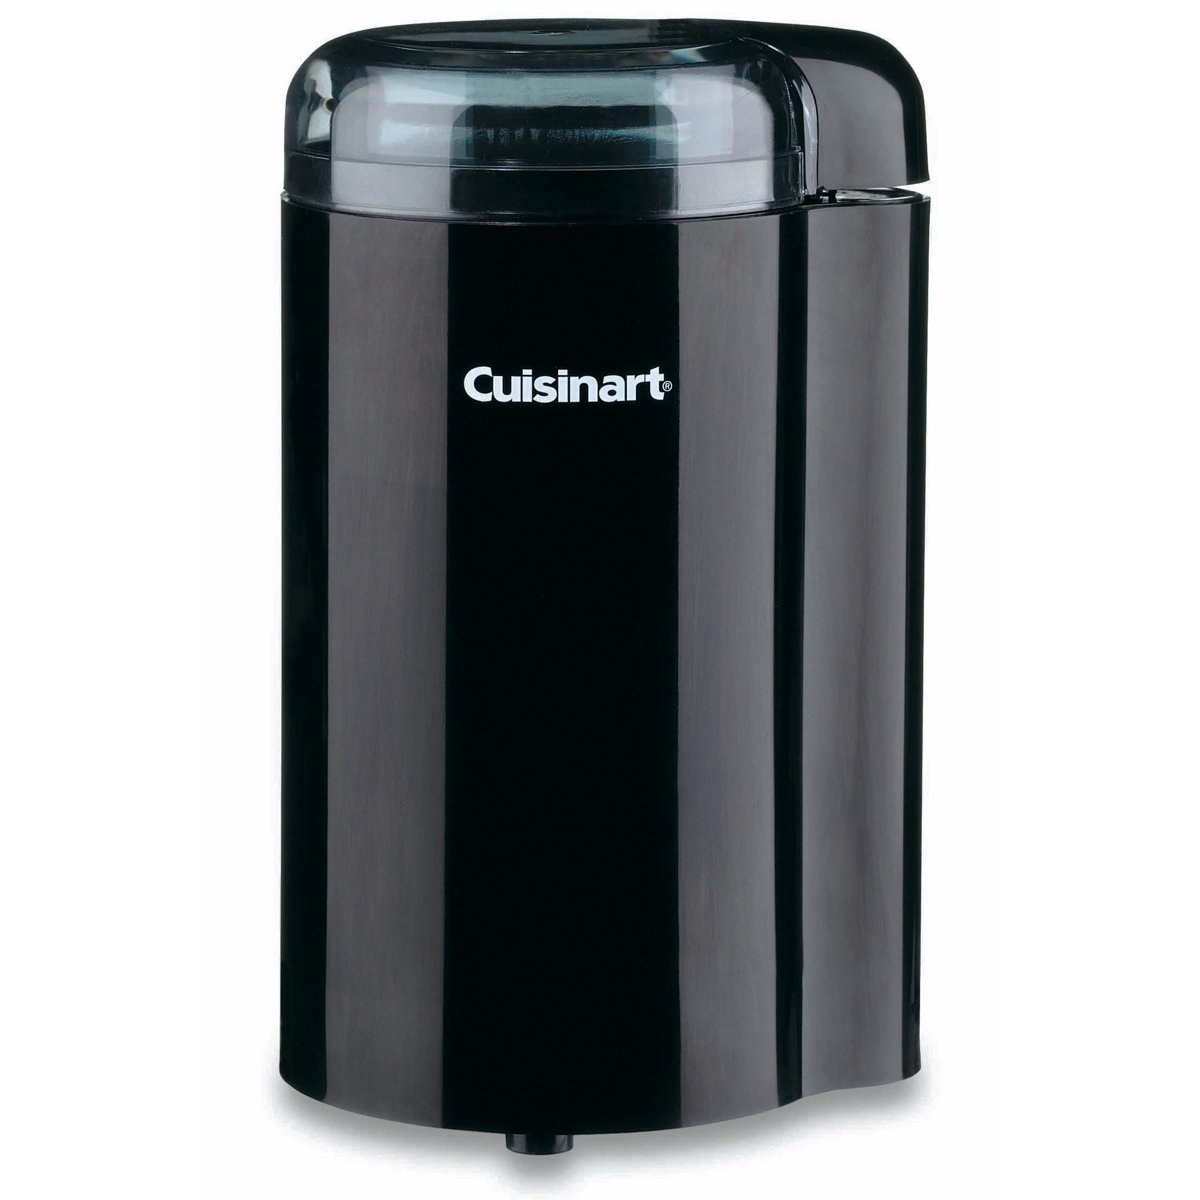 Cuisinart DCG-20BK Coffee Bar Coffee Grinder, Black DISCONTINUED BY MANUFACTURER by Cuisinart